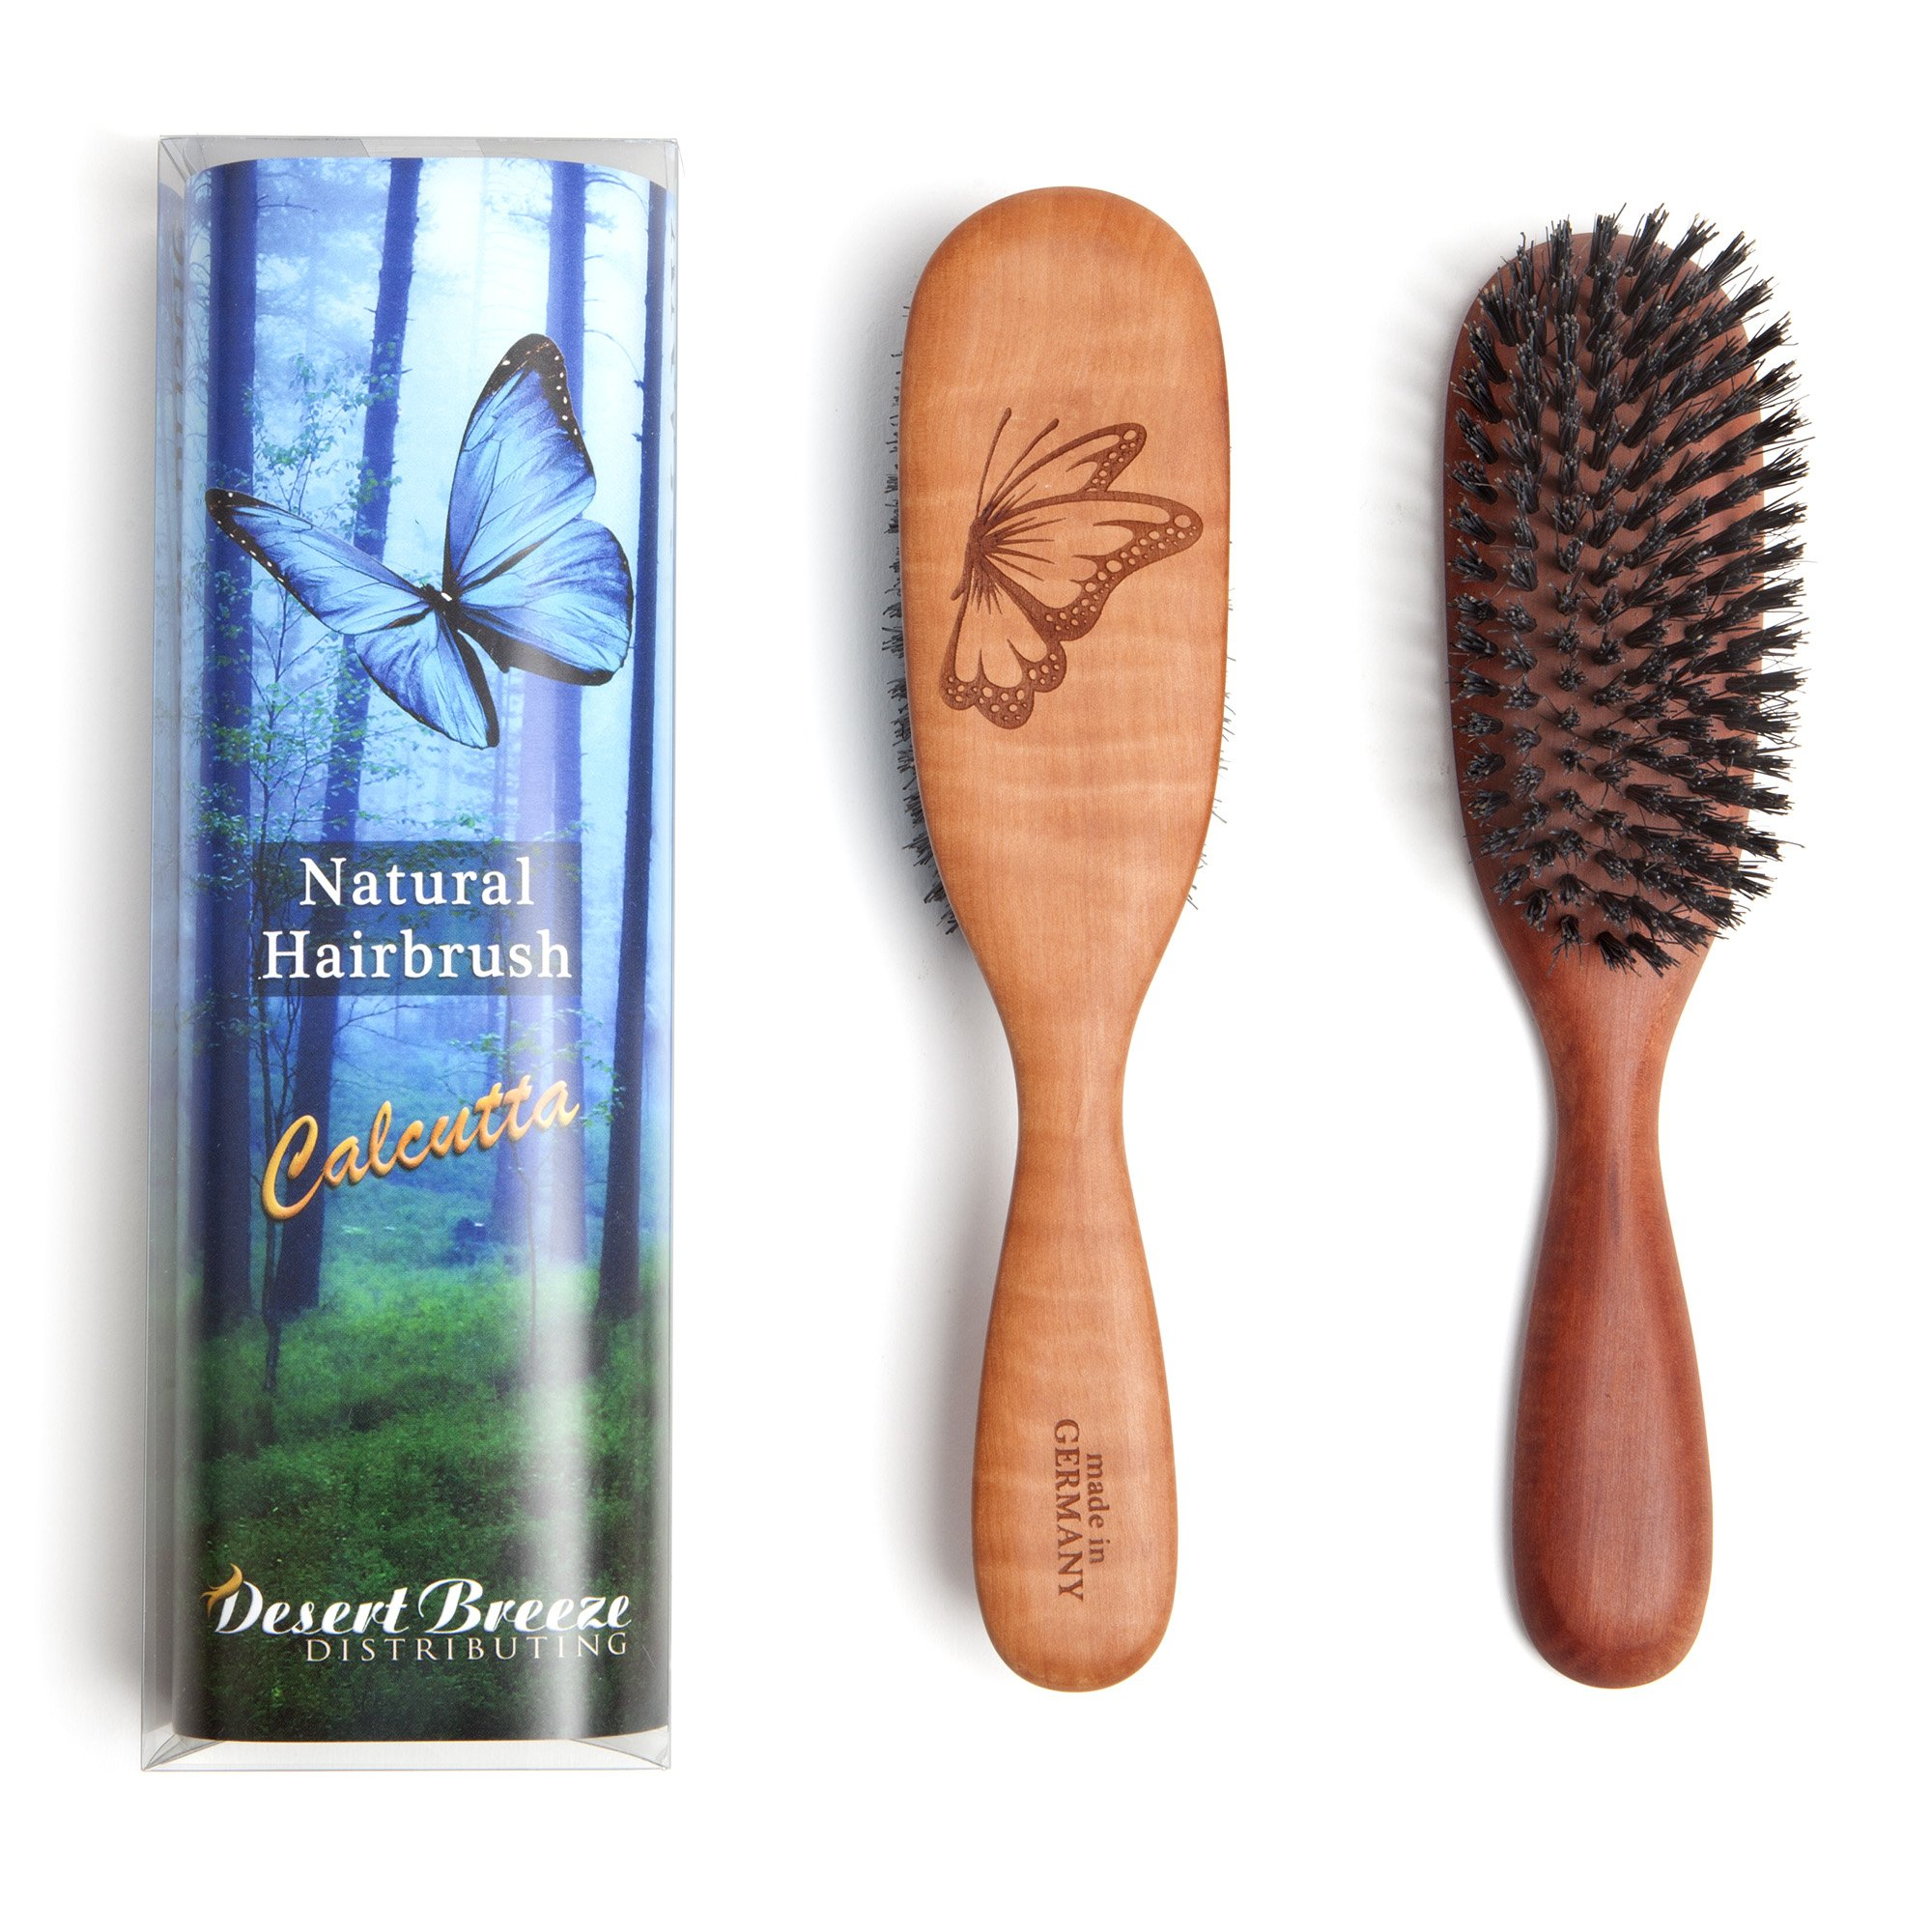 100% Pure Calcutta Wild Boar Bristle Hair Brush, Butterfly Engraving, PW1-CLC, Extra Stiff Natural Bristles, Medium Hair Thickness, Pear Wood Handle, Made in Germany, by Desert Breeze Distributing